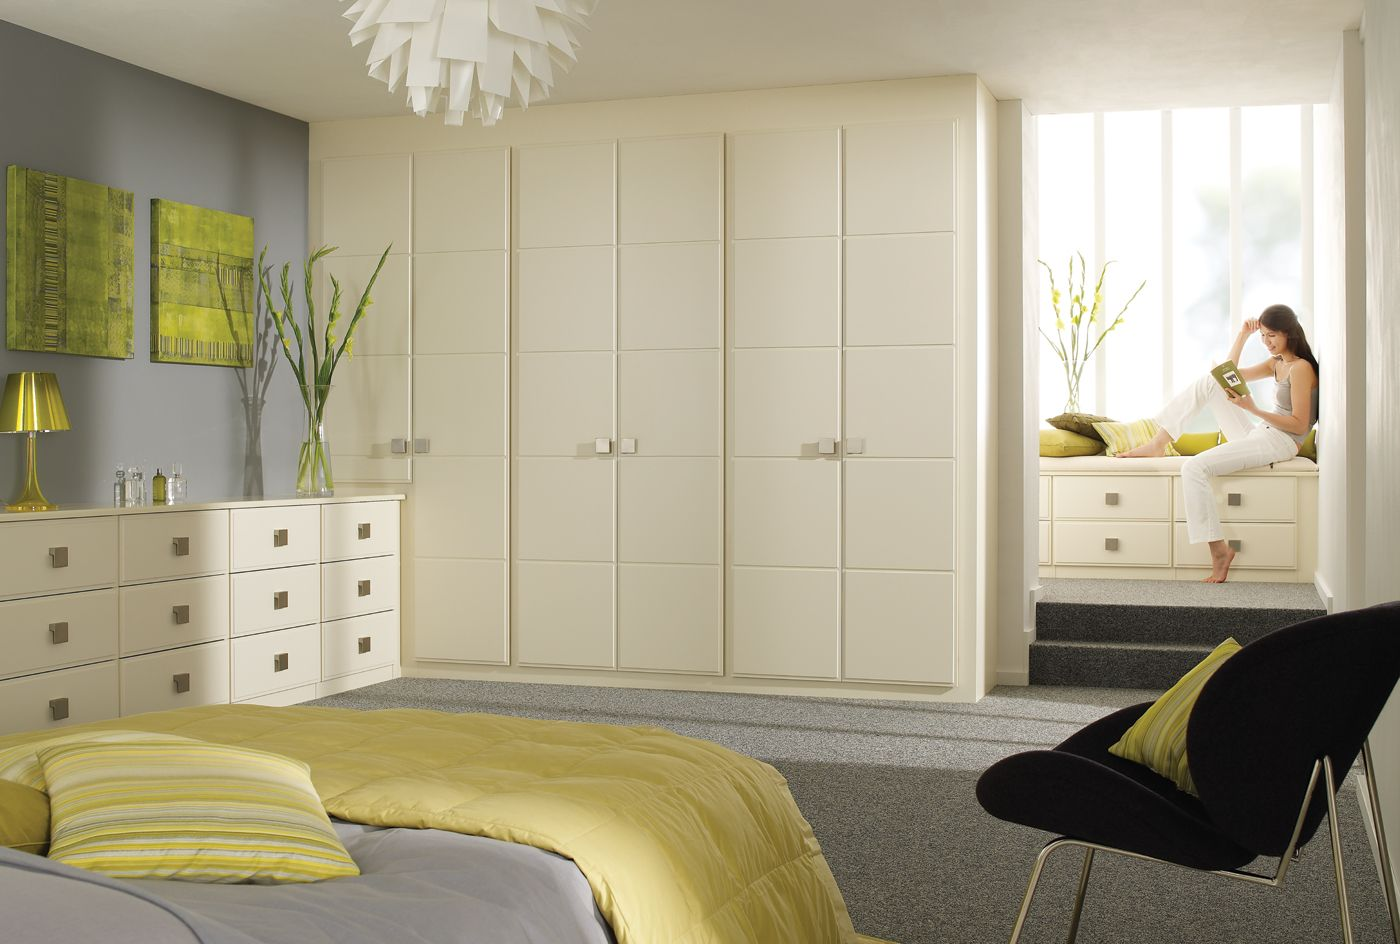 linea cream bedroom furniture wardrobes from sharps. Interior Design Ideas. Home Design Ideas